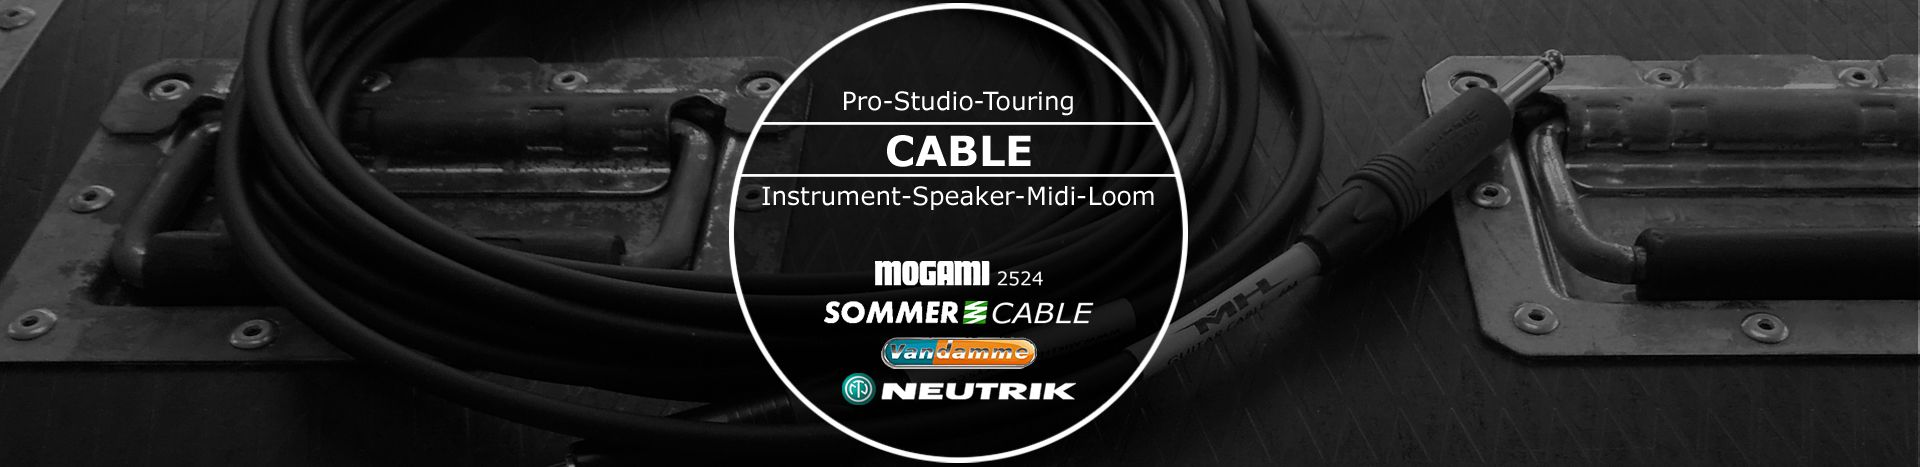 MH Cable Banner